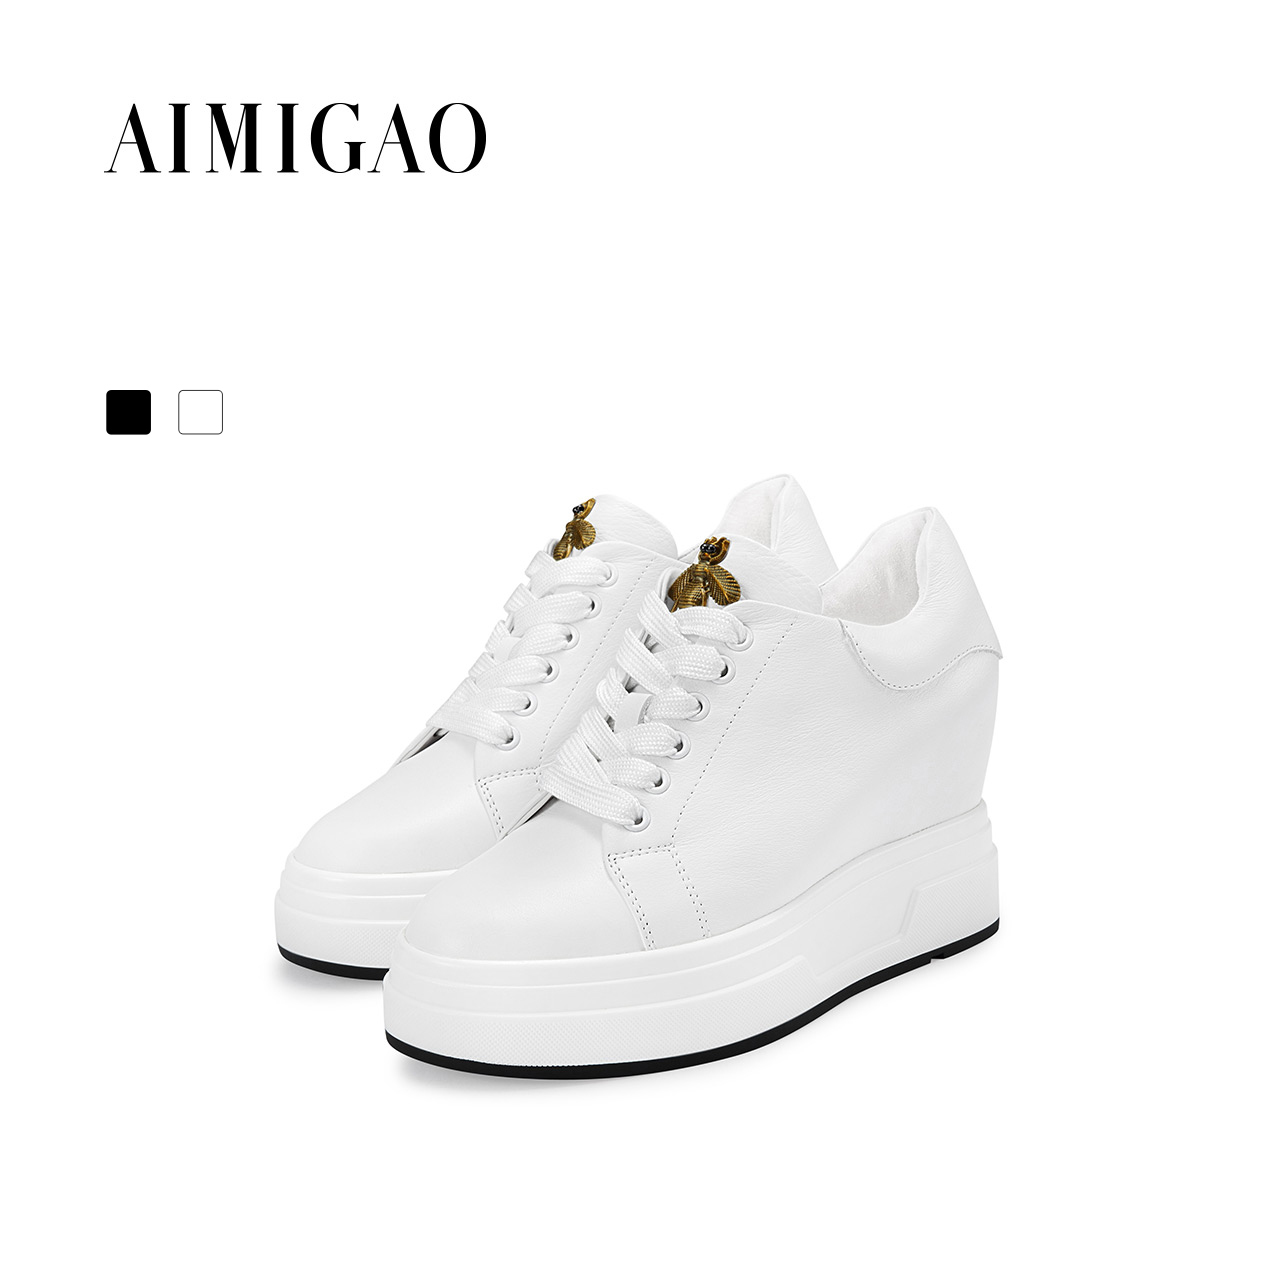 AIMIGAO Leather Shoes Handmade Luxury Brand Feminino Sapato Women Casual White Shoes Increased height women sneakers 2017 Autumn pinsen 2018 women leather shoes handmade luxury brand tenis feminino sapato women casual shoes basket femme air superstar shoes